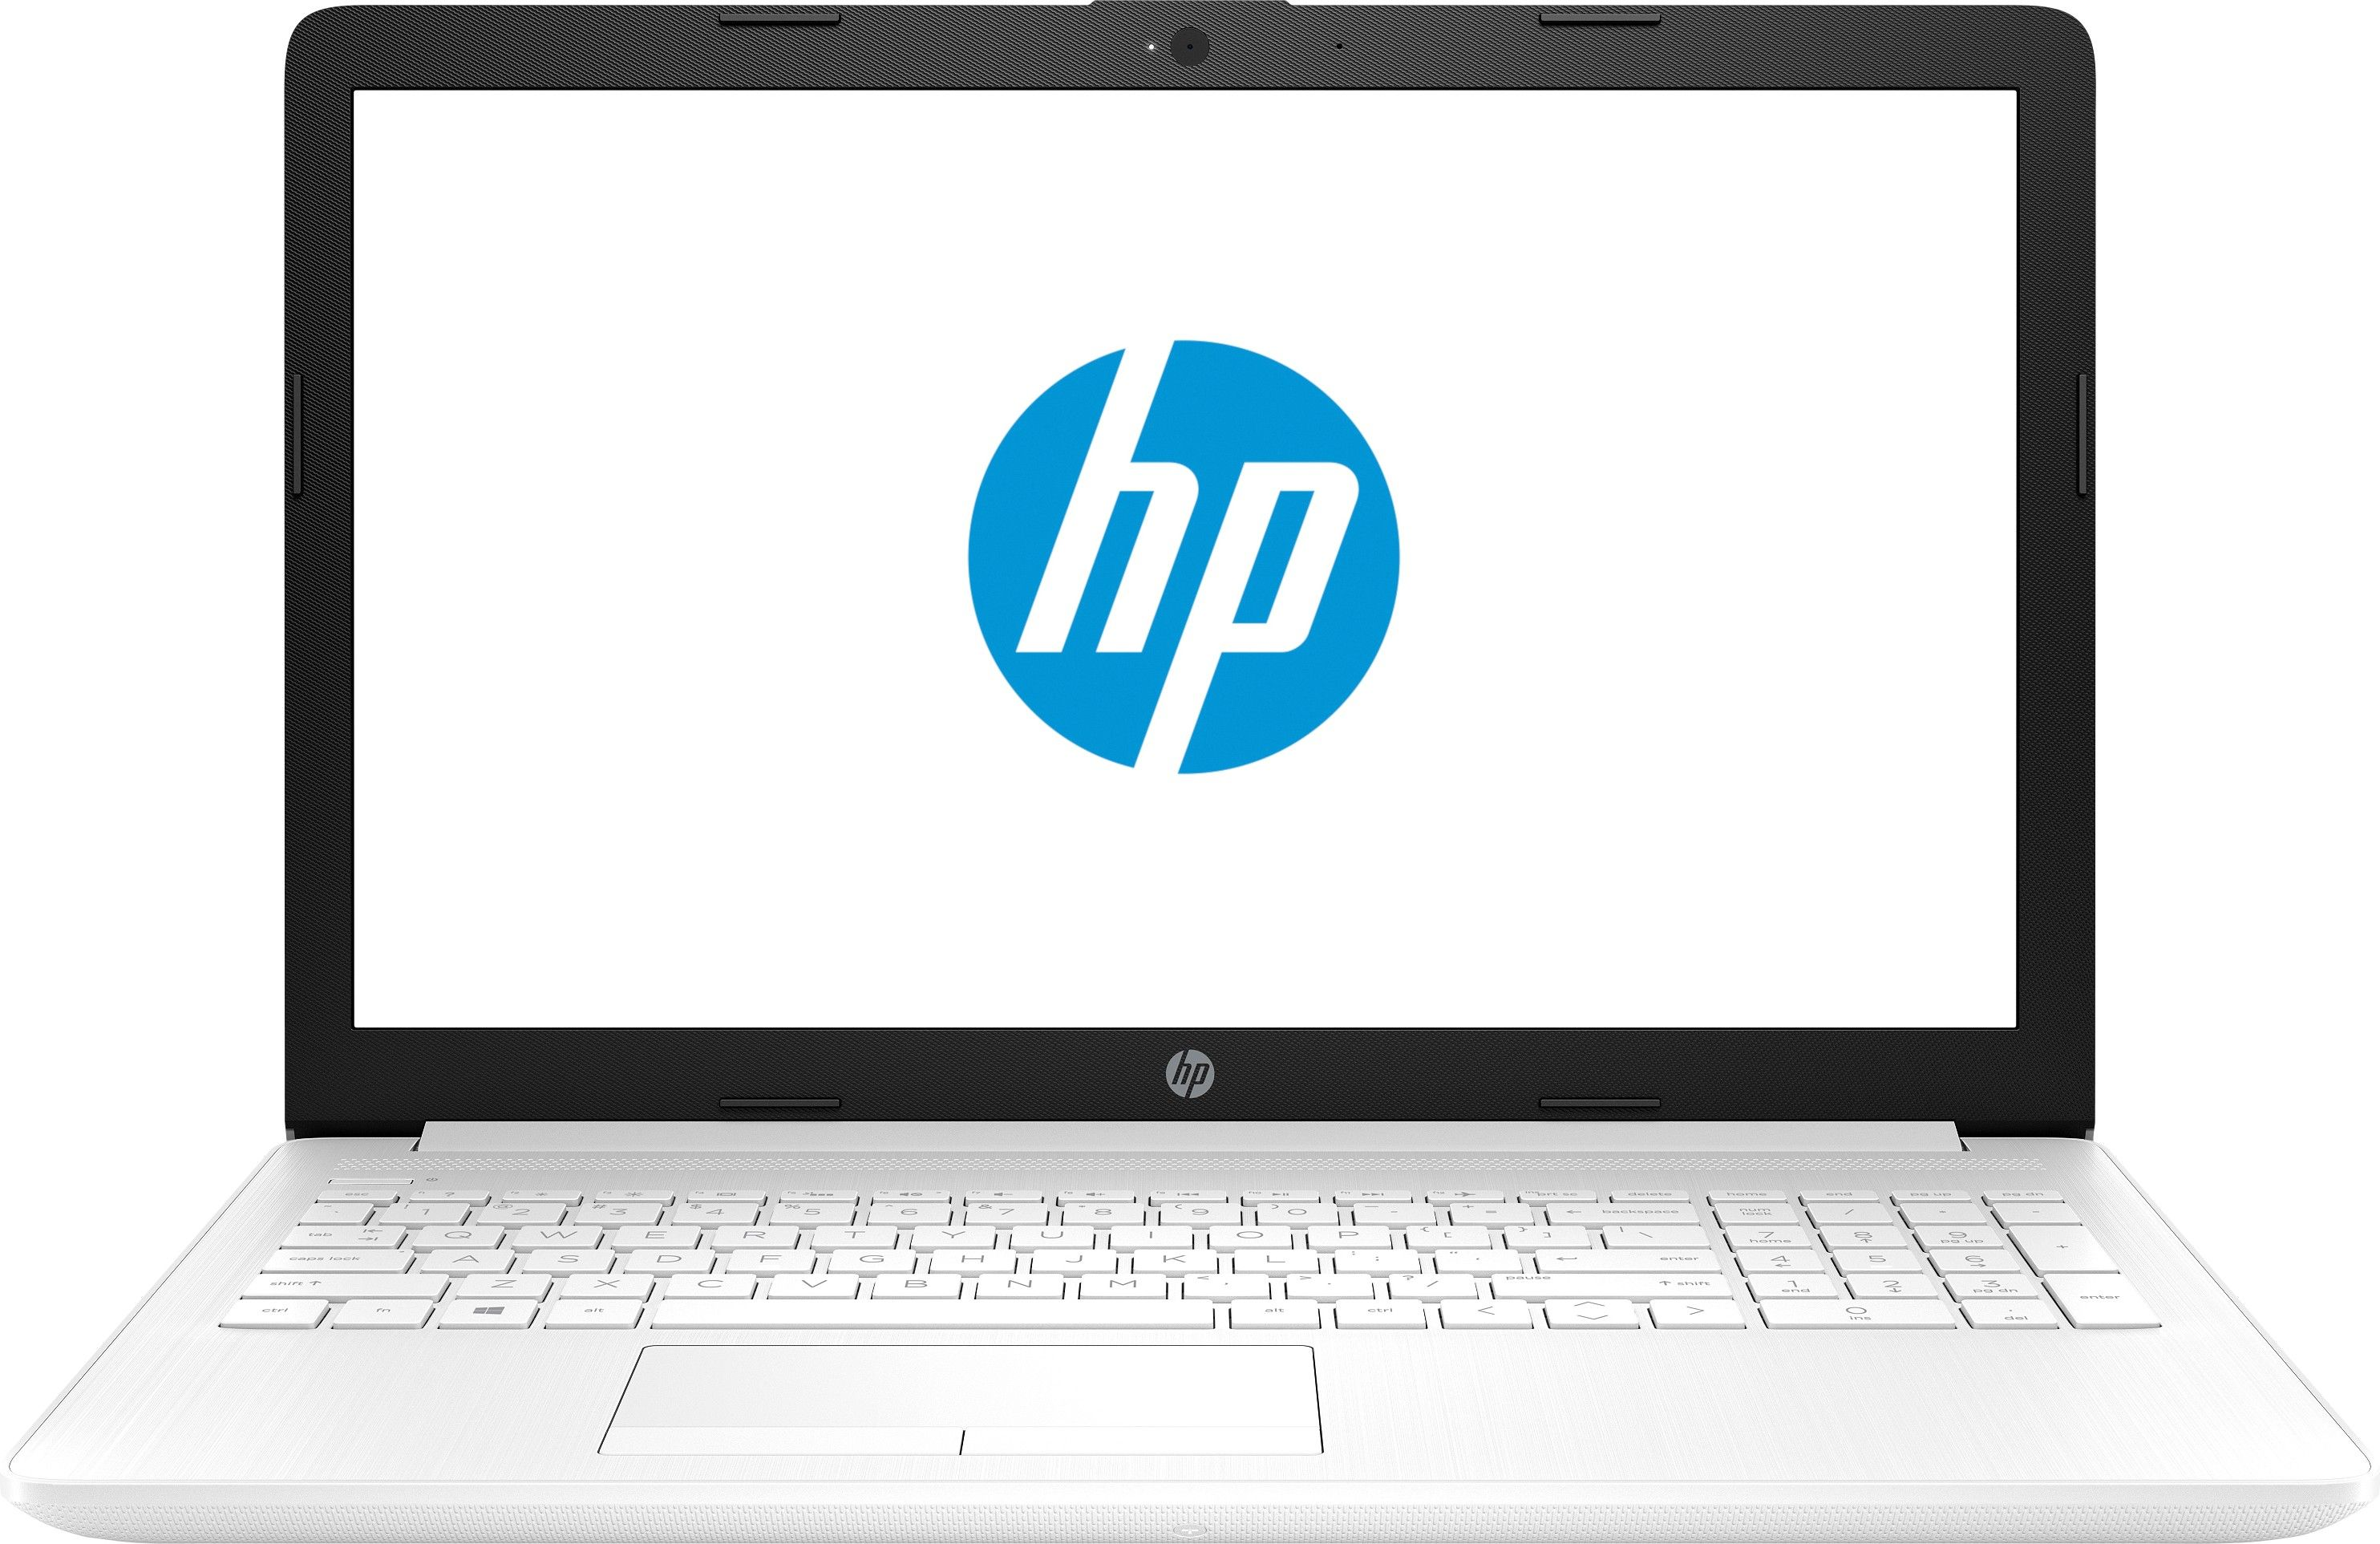 Buy Hp 15 Db0011nv White Notebook 15 6 2 Ghz Amd Ryzen 5 2500u At Bestbuycyprus Com For 669 00 With Free Delivery Hp Laptop Pc Laptop Light Laptops